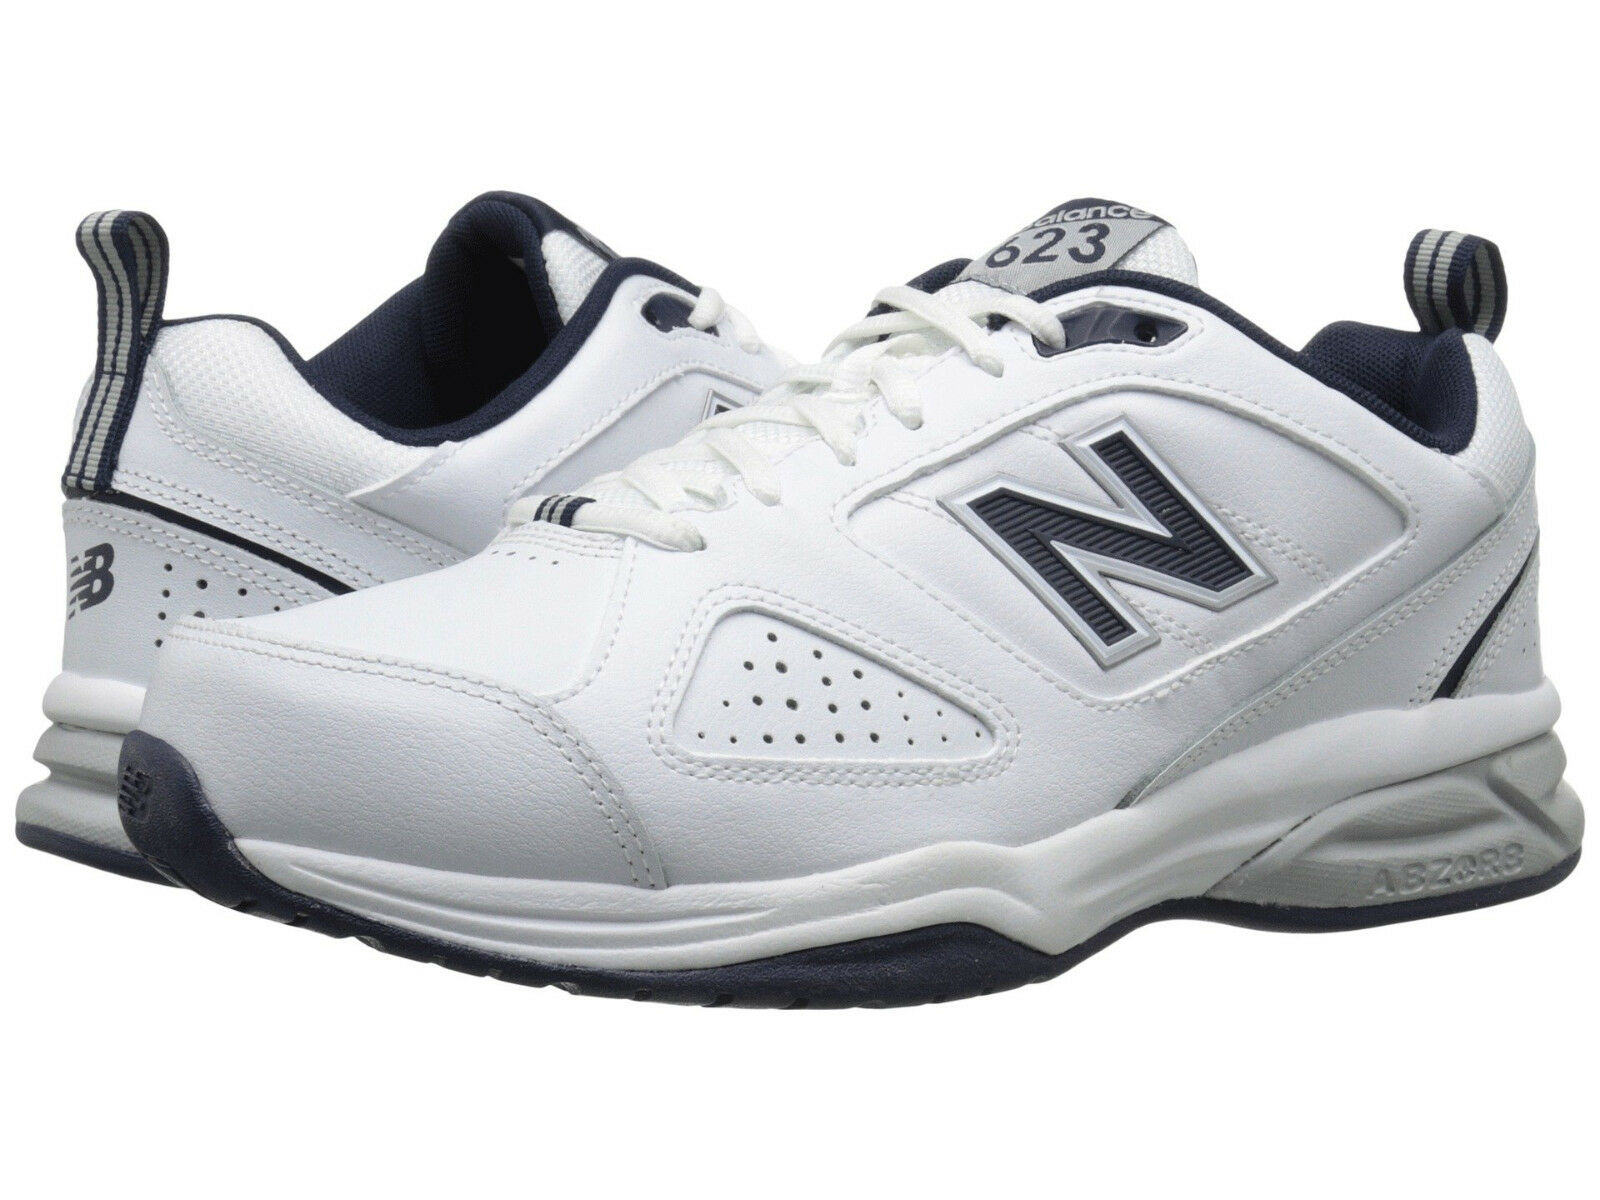 Men New Balance MX623WN3 Walking shoes Medium D White Navy Leather 100%Authentic